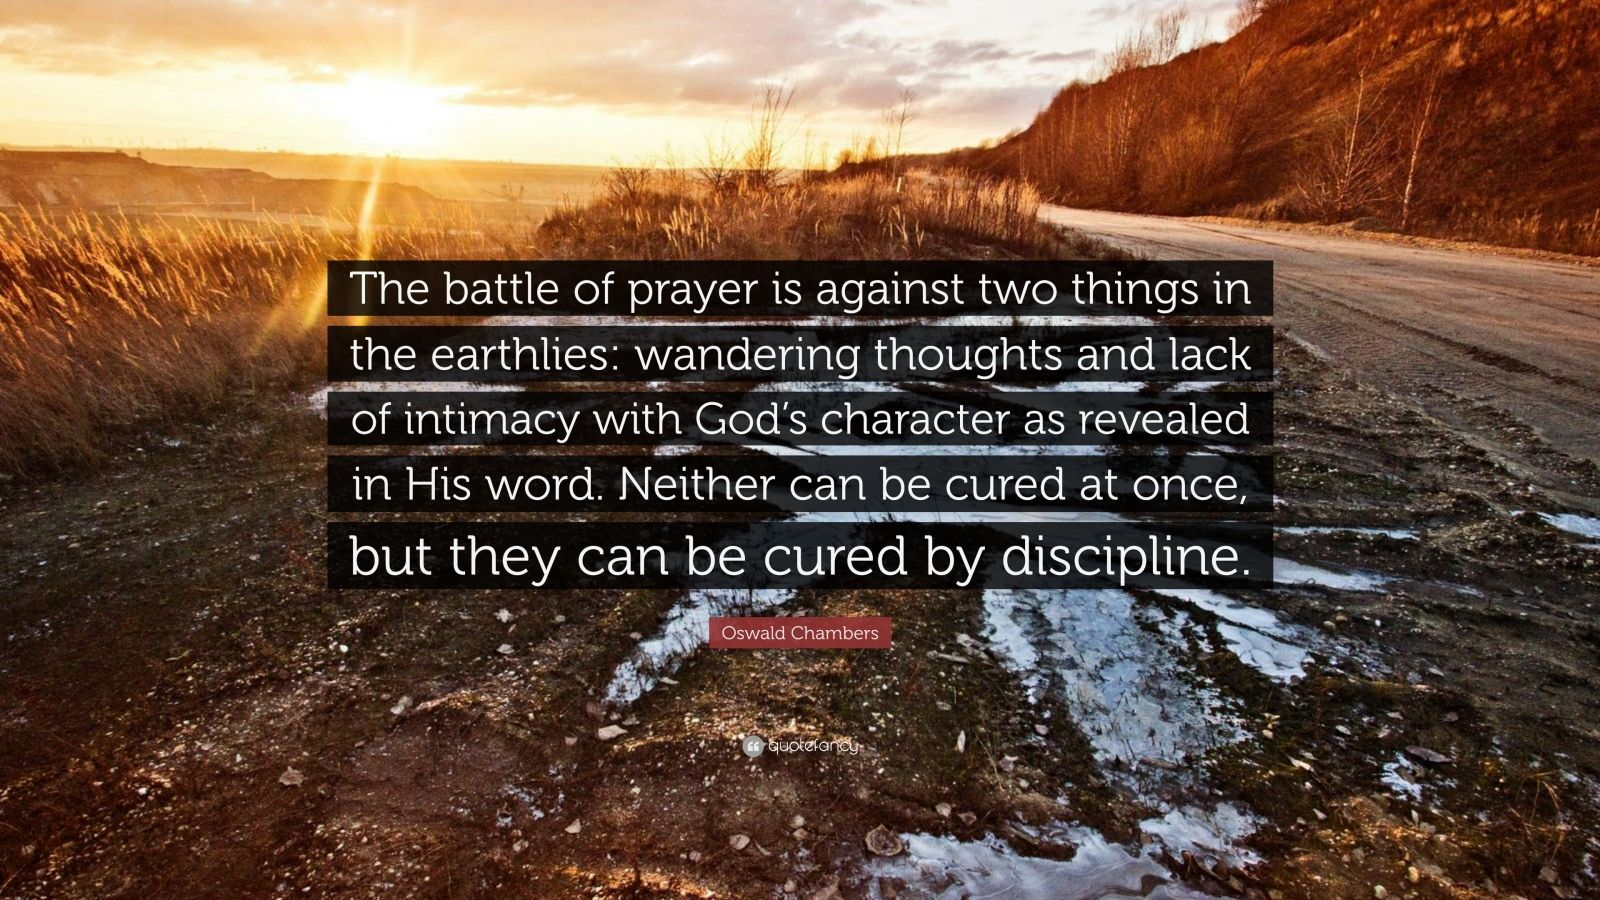 """Oswald Chambers Quote: """"The battle of prayer is against two things in the earthlies: wandering thoughts and lack of intimacy with God's character as revealed in His word. Neither can be cured at once, but they can be cured by discipline."""""""